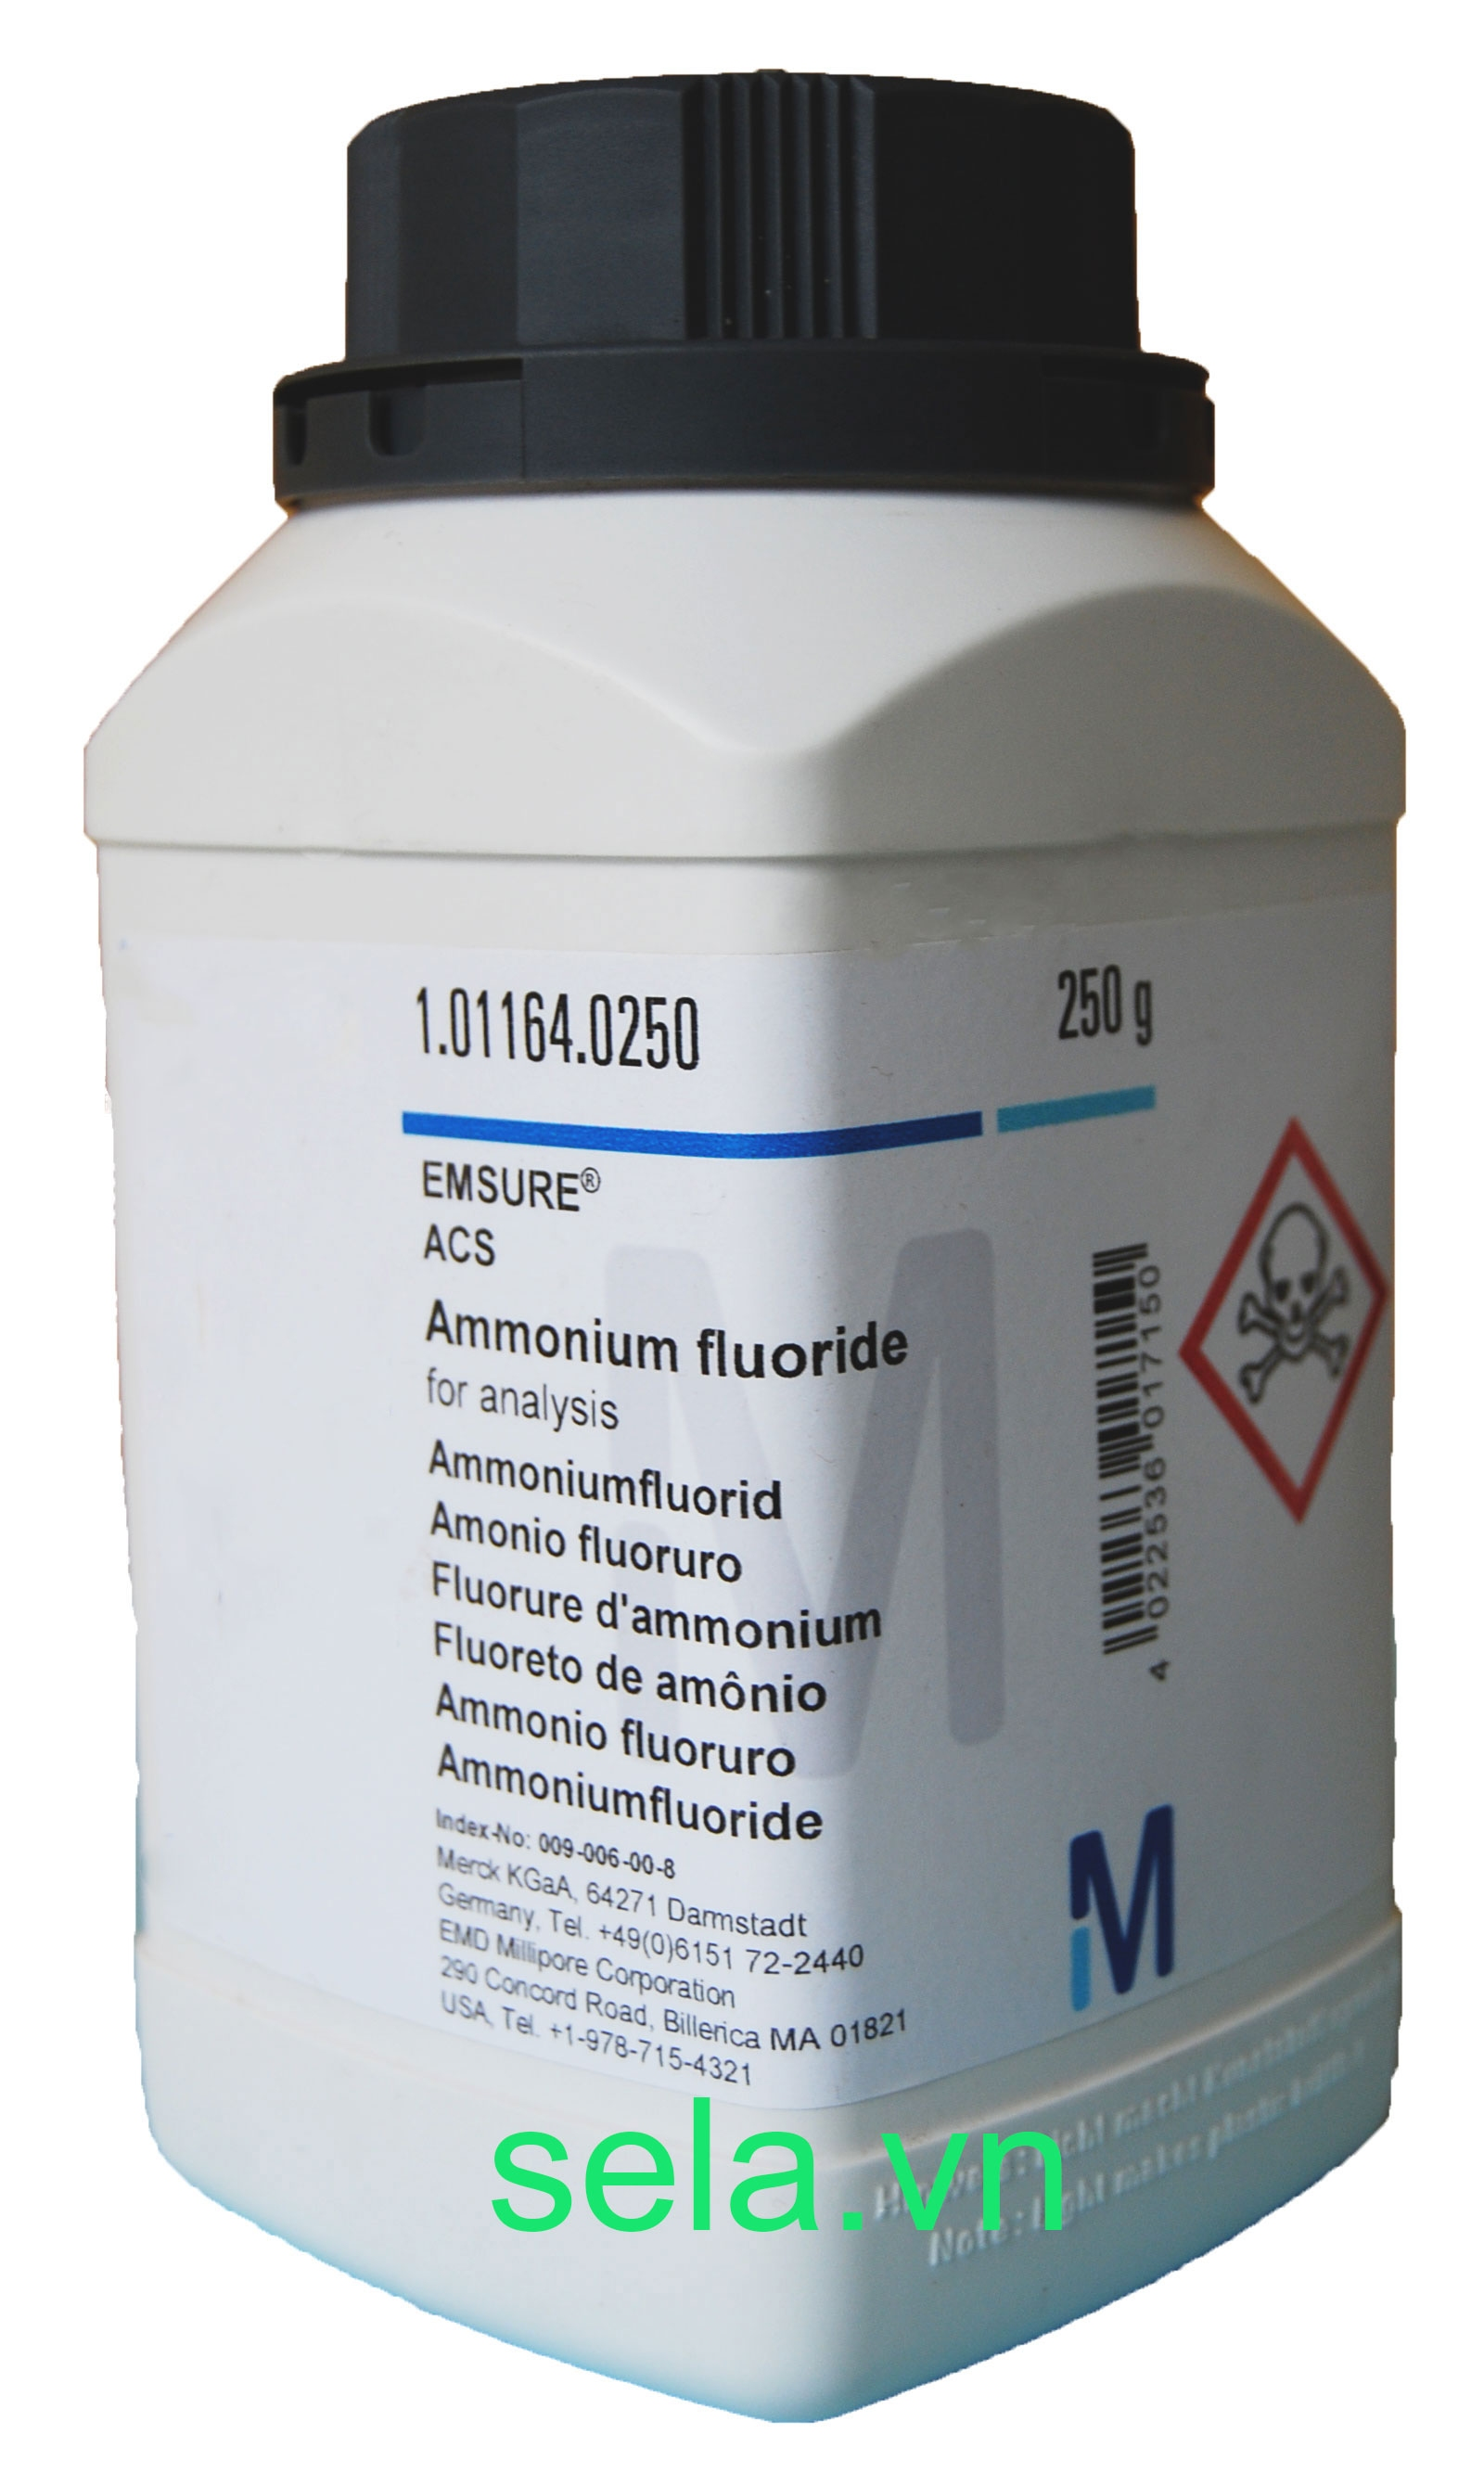 Ammonium fluoride for analysis EMSURE® ACS